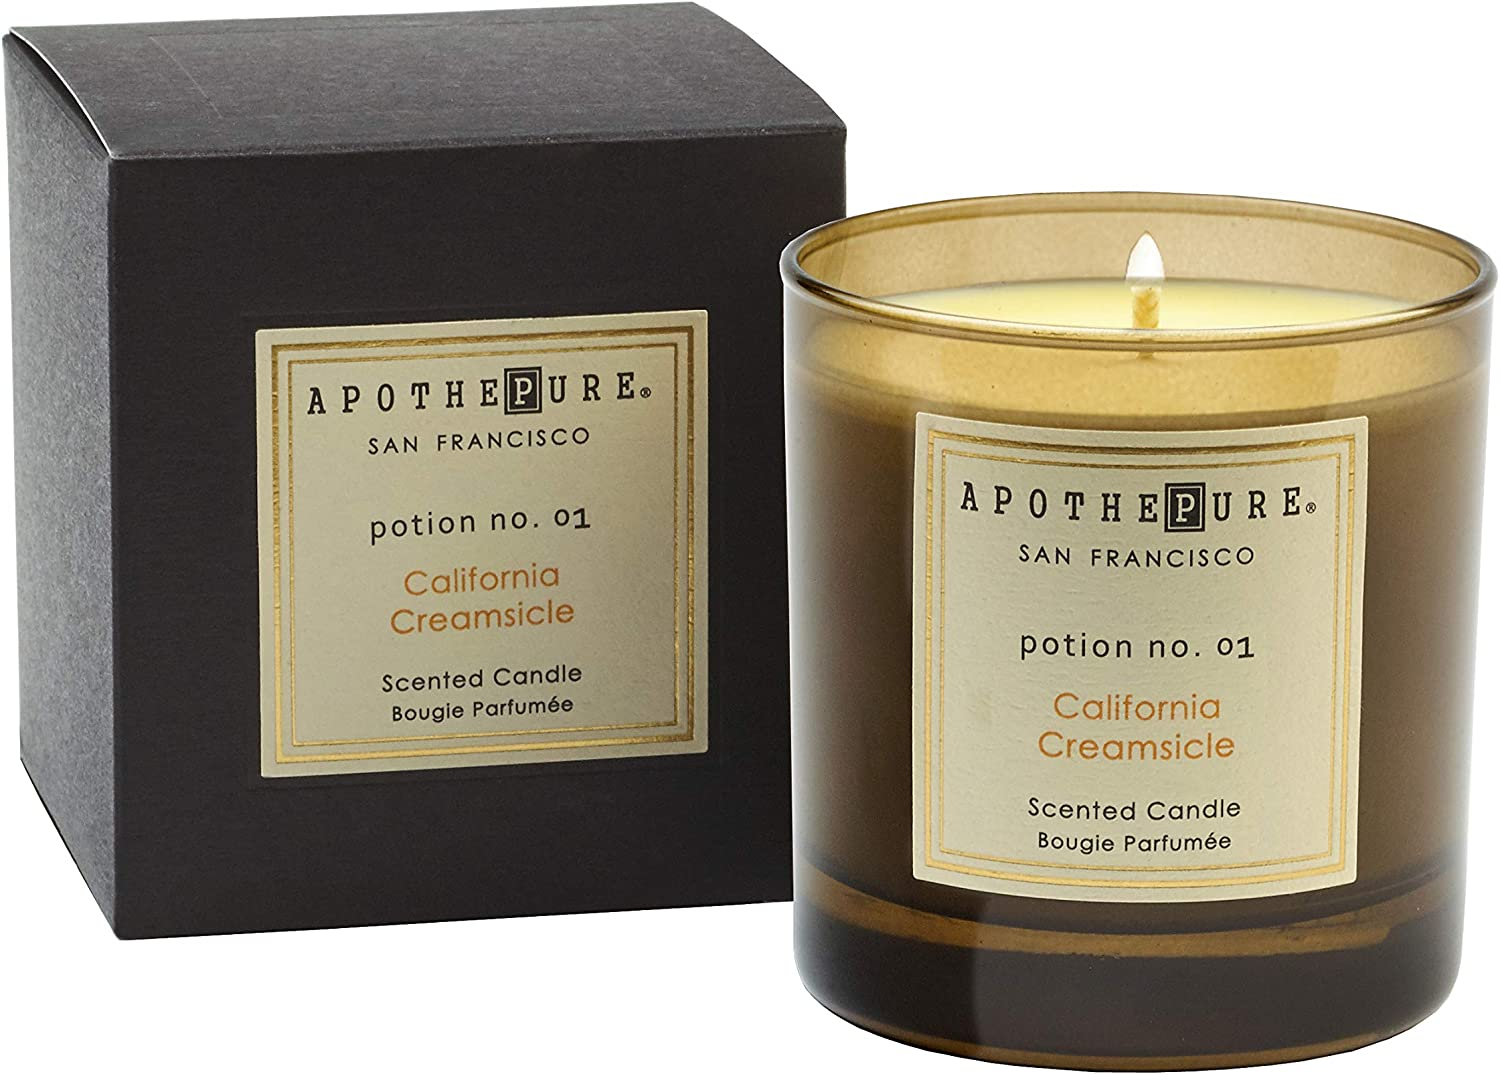 Nude Candle God Candle White Male Torso Candle Apollo Men Candle Soy Wax LARGE Nudity Candle